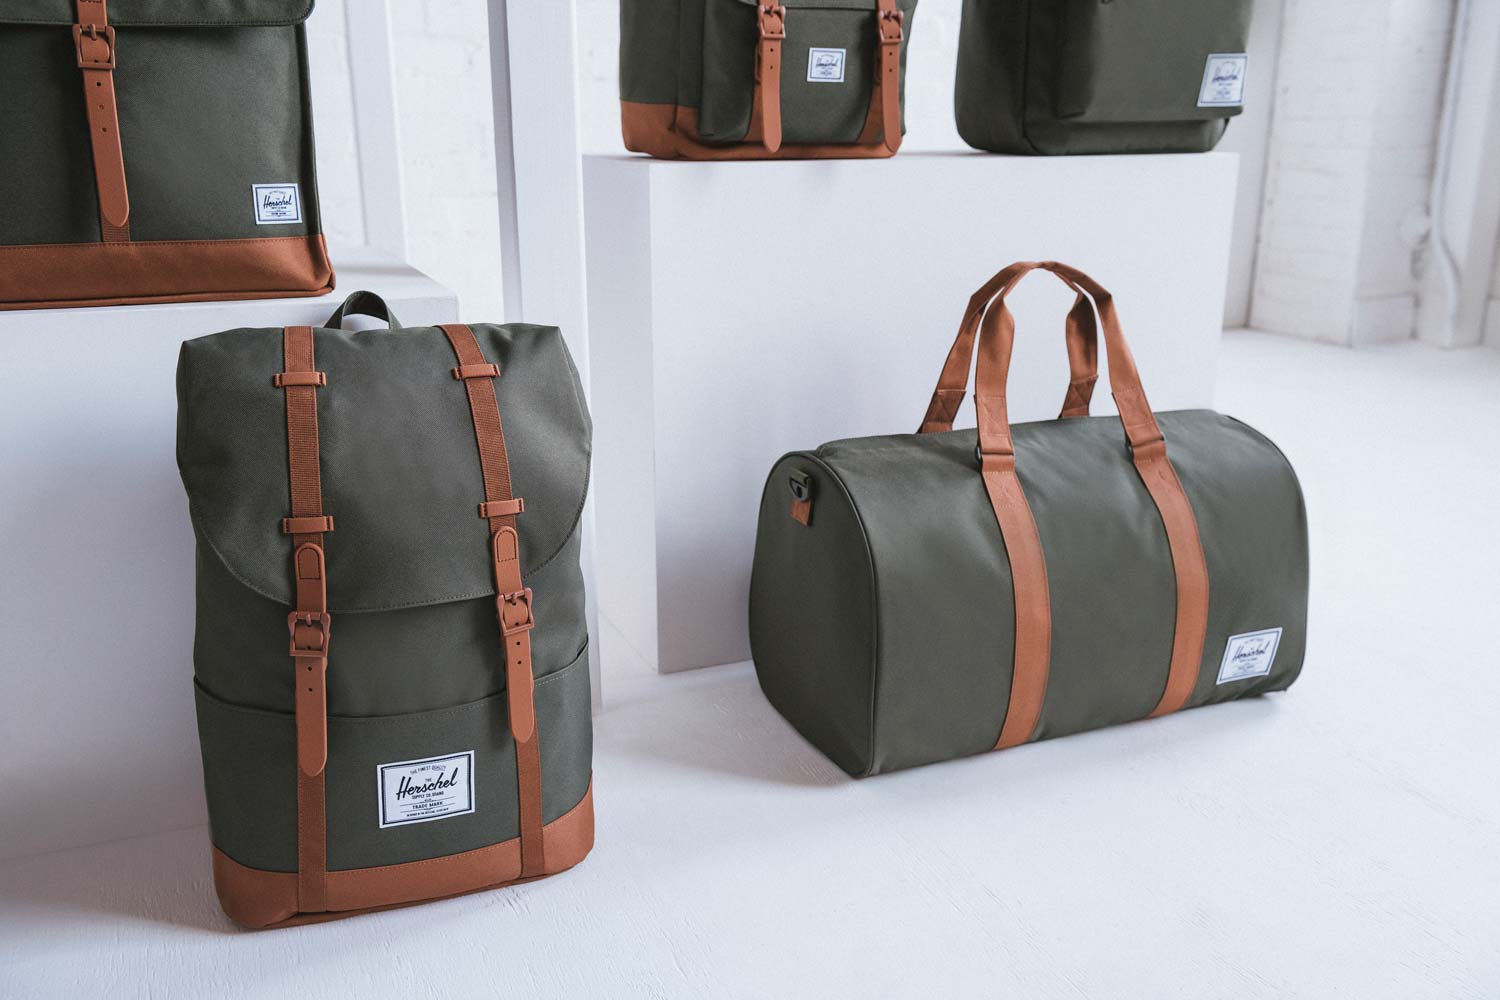 Herschel Debuts Bag Collection Made From Recycled Materials